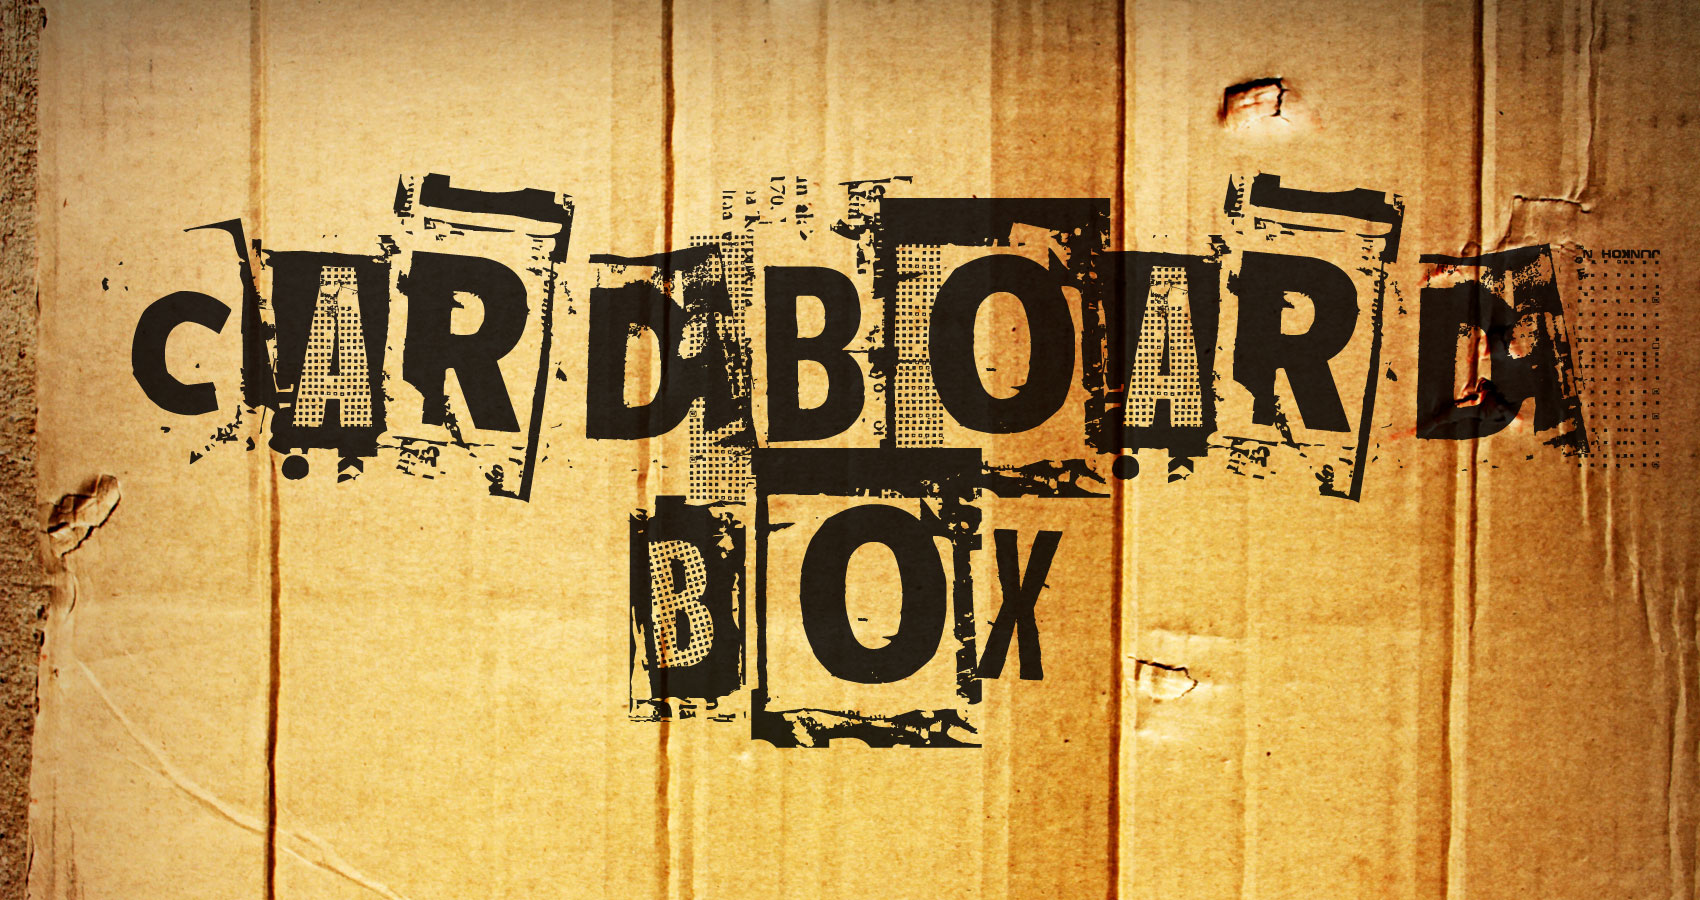 Cardboard Box written by Robbie Masso at Spillwords.com